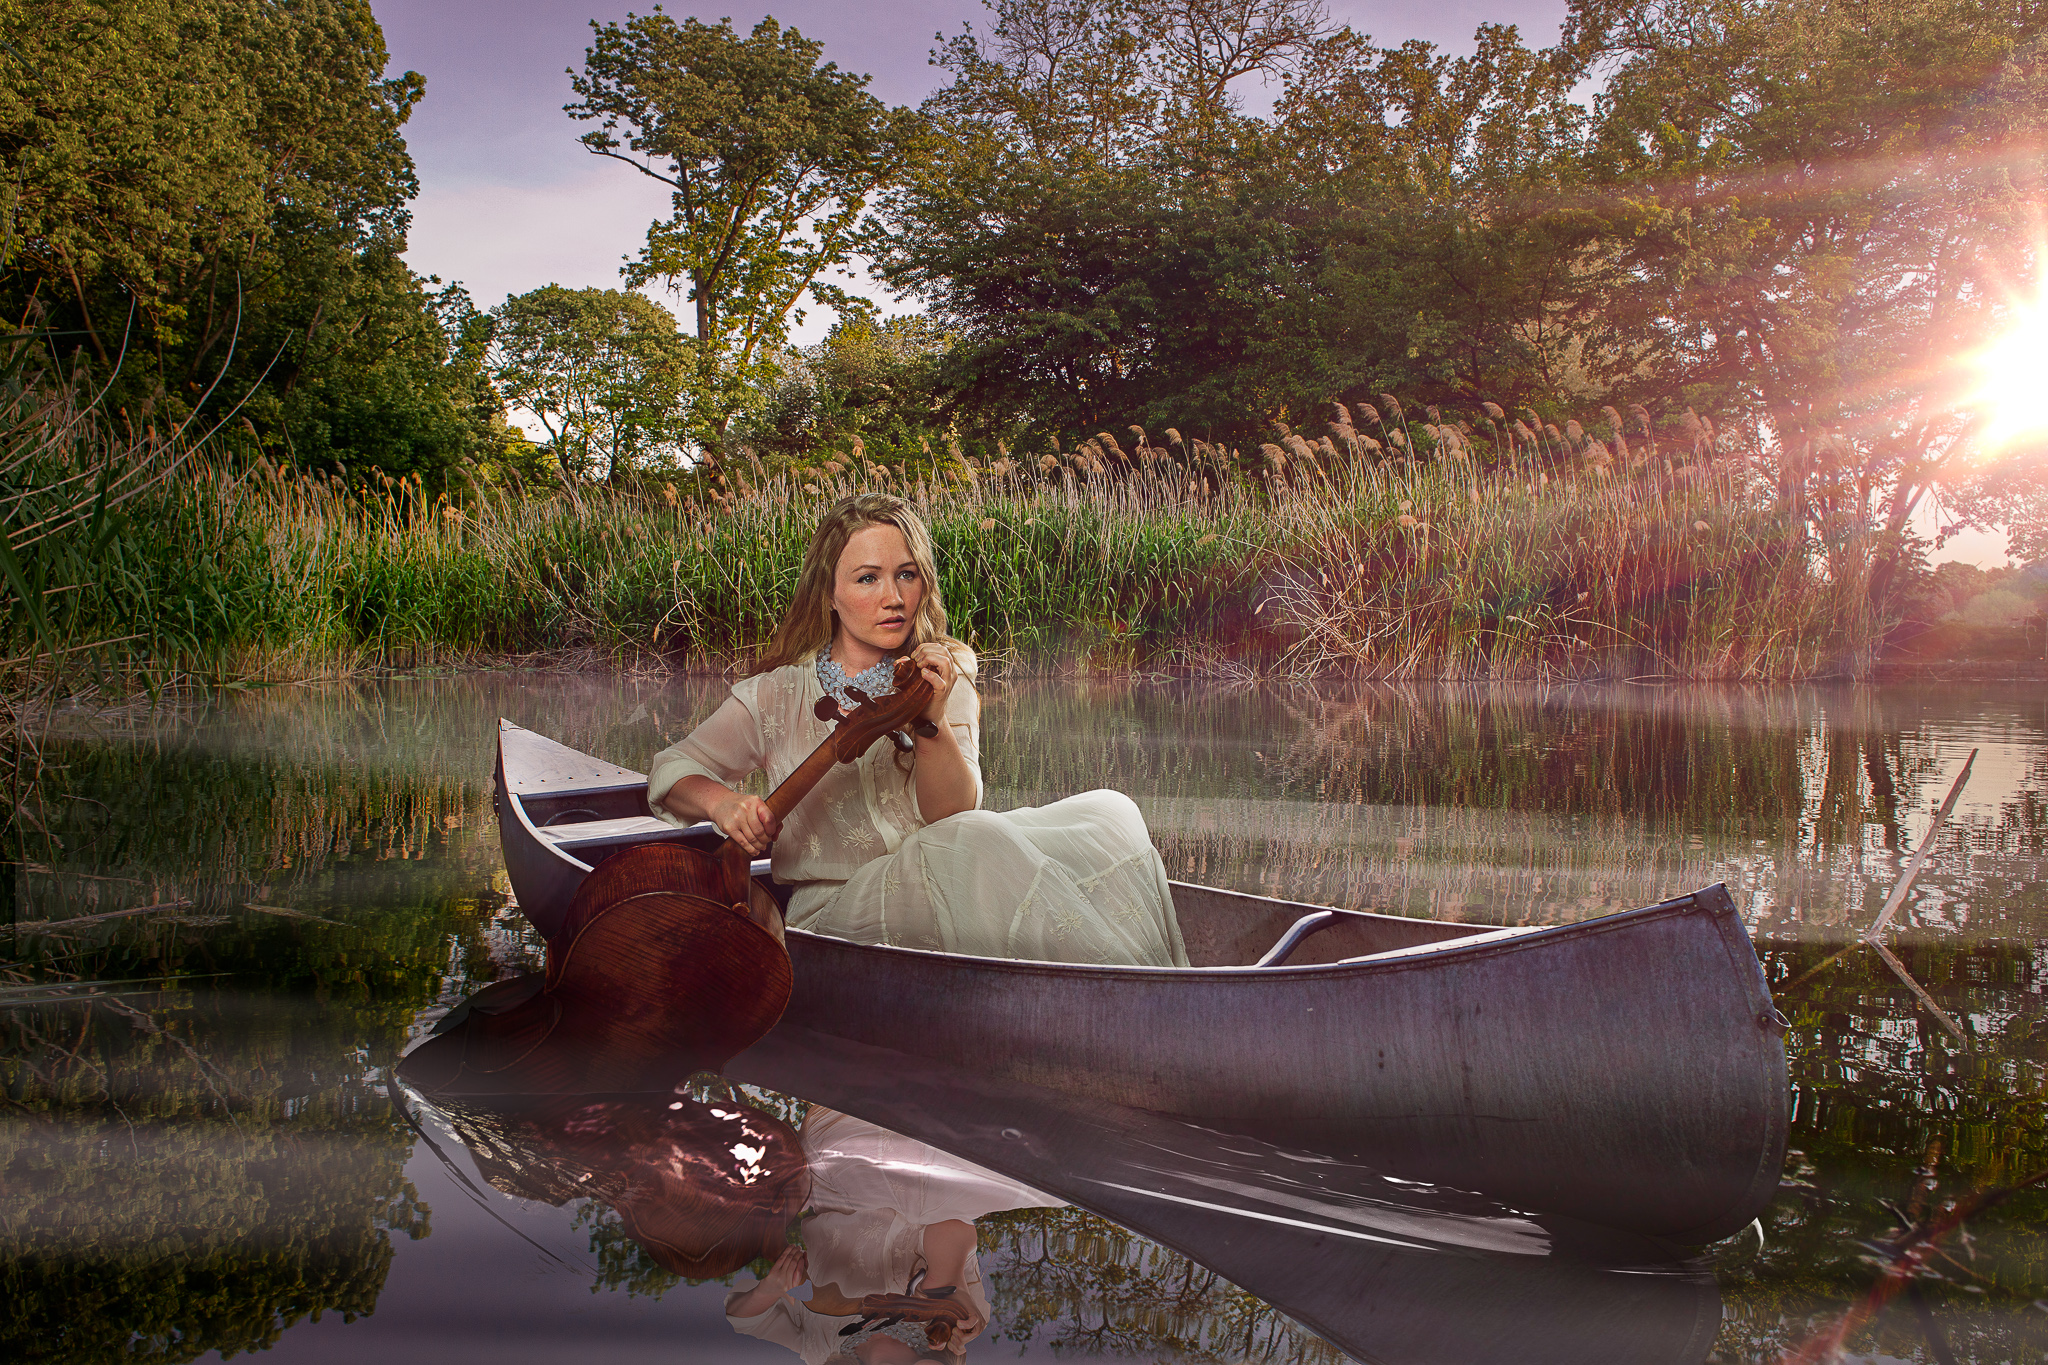 Ashley Bathgate in a Canoe